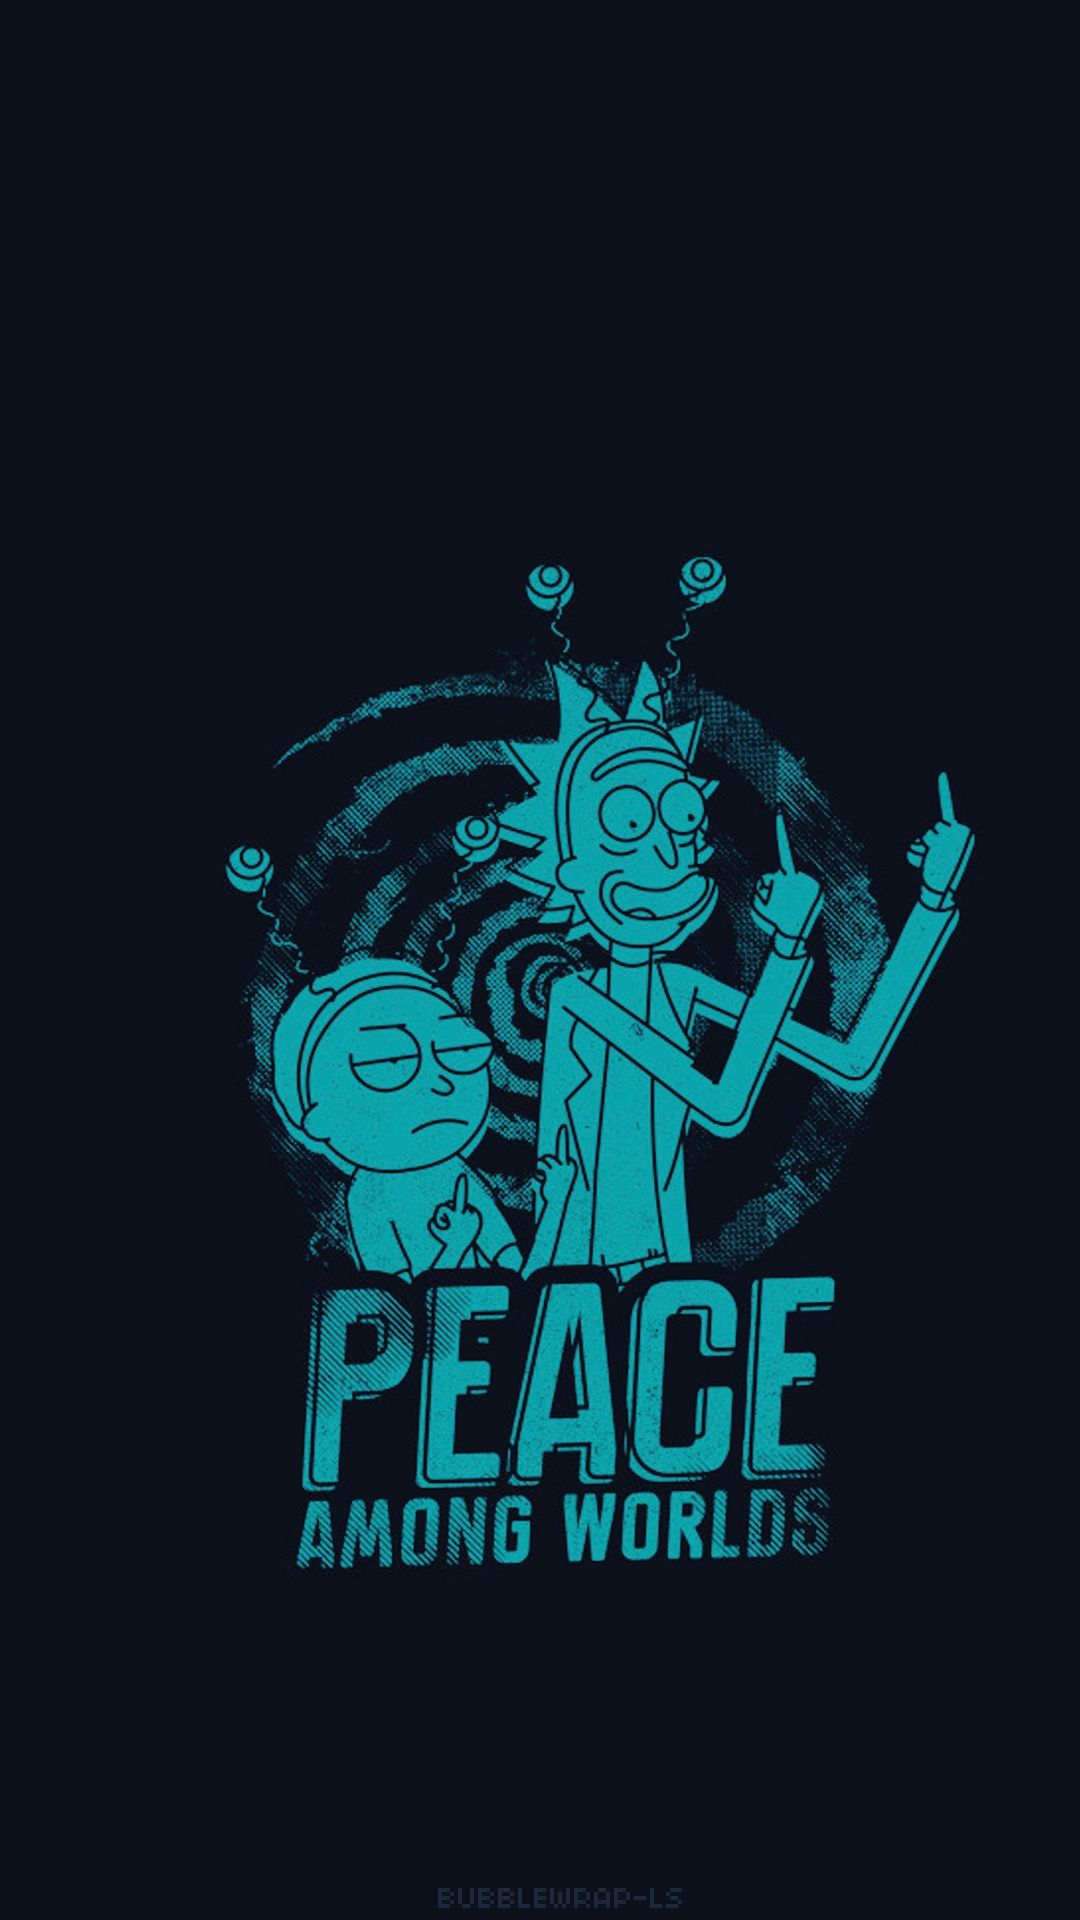 L O C K S C R E E N S Rick And Morty For The Amazing Rick And Morty Lockscreen Wallpaper In 2020 Rick And Morty Poster Rick And Morty Tattoo Rick And Morty Quotes